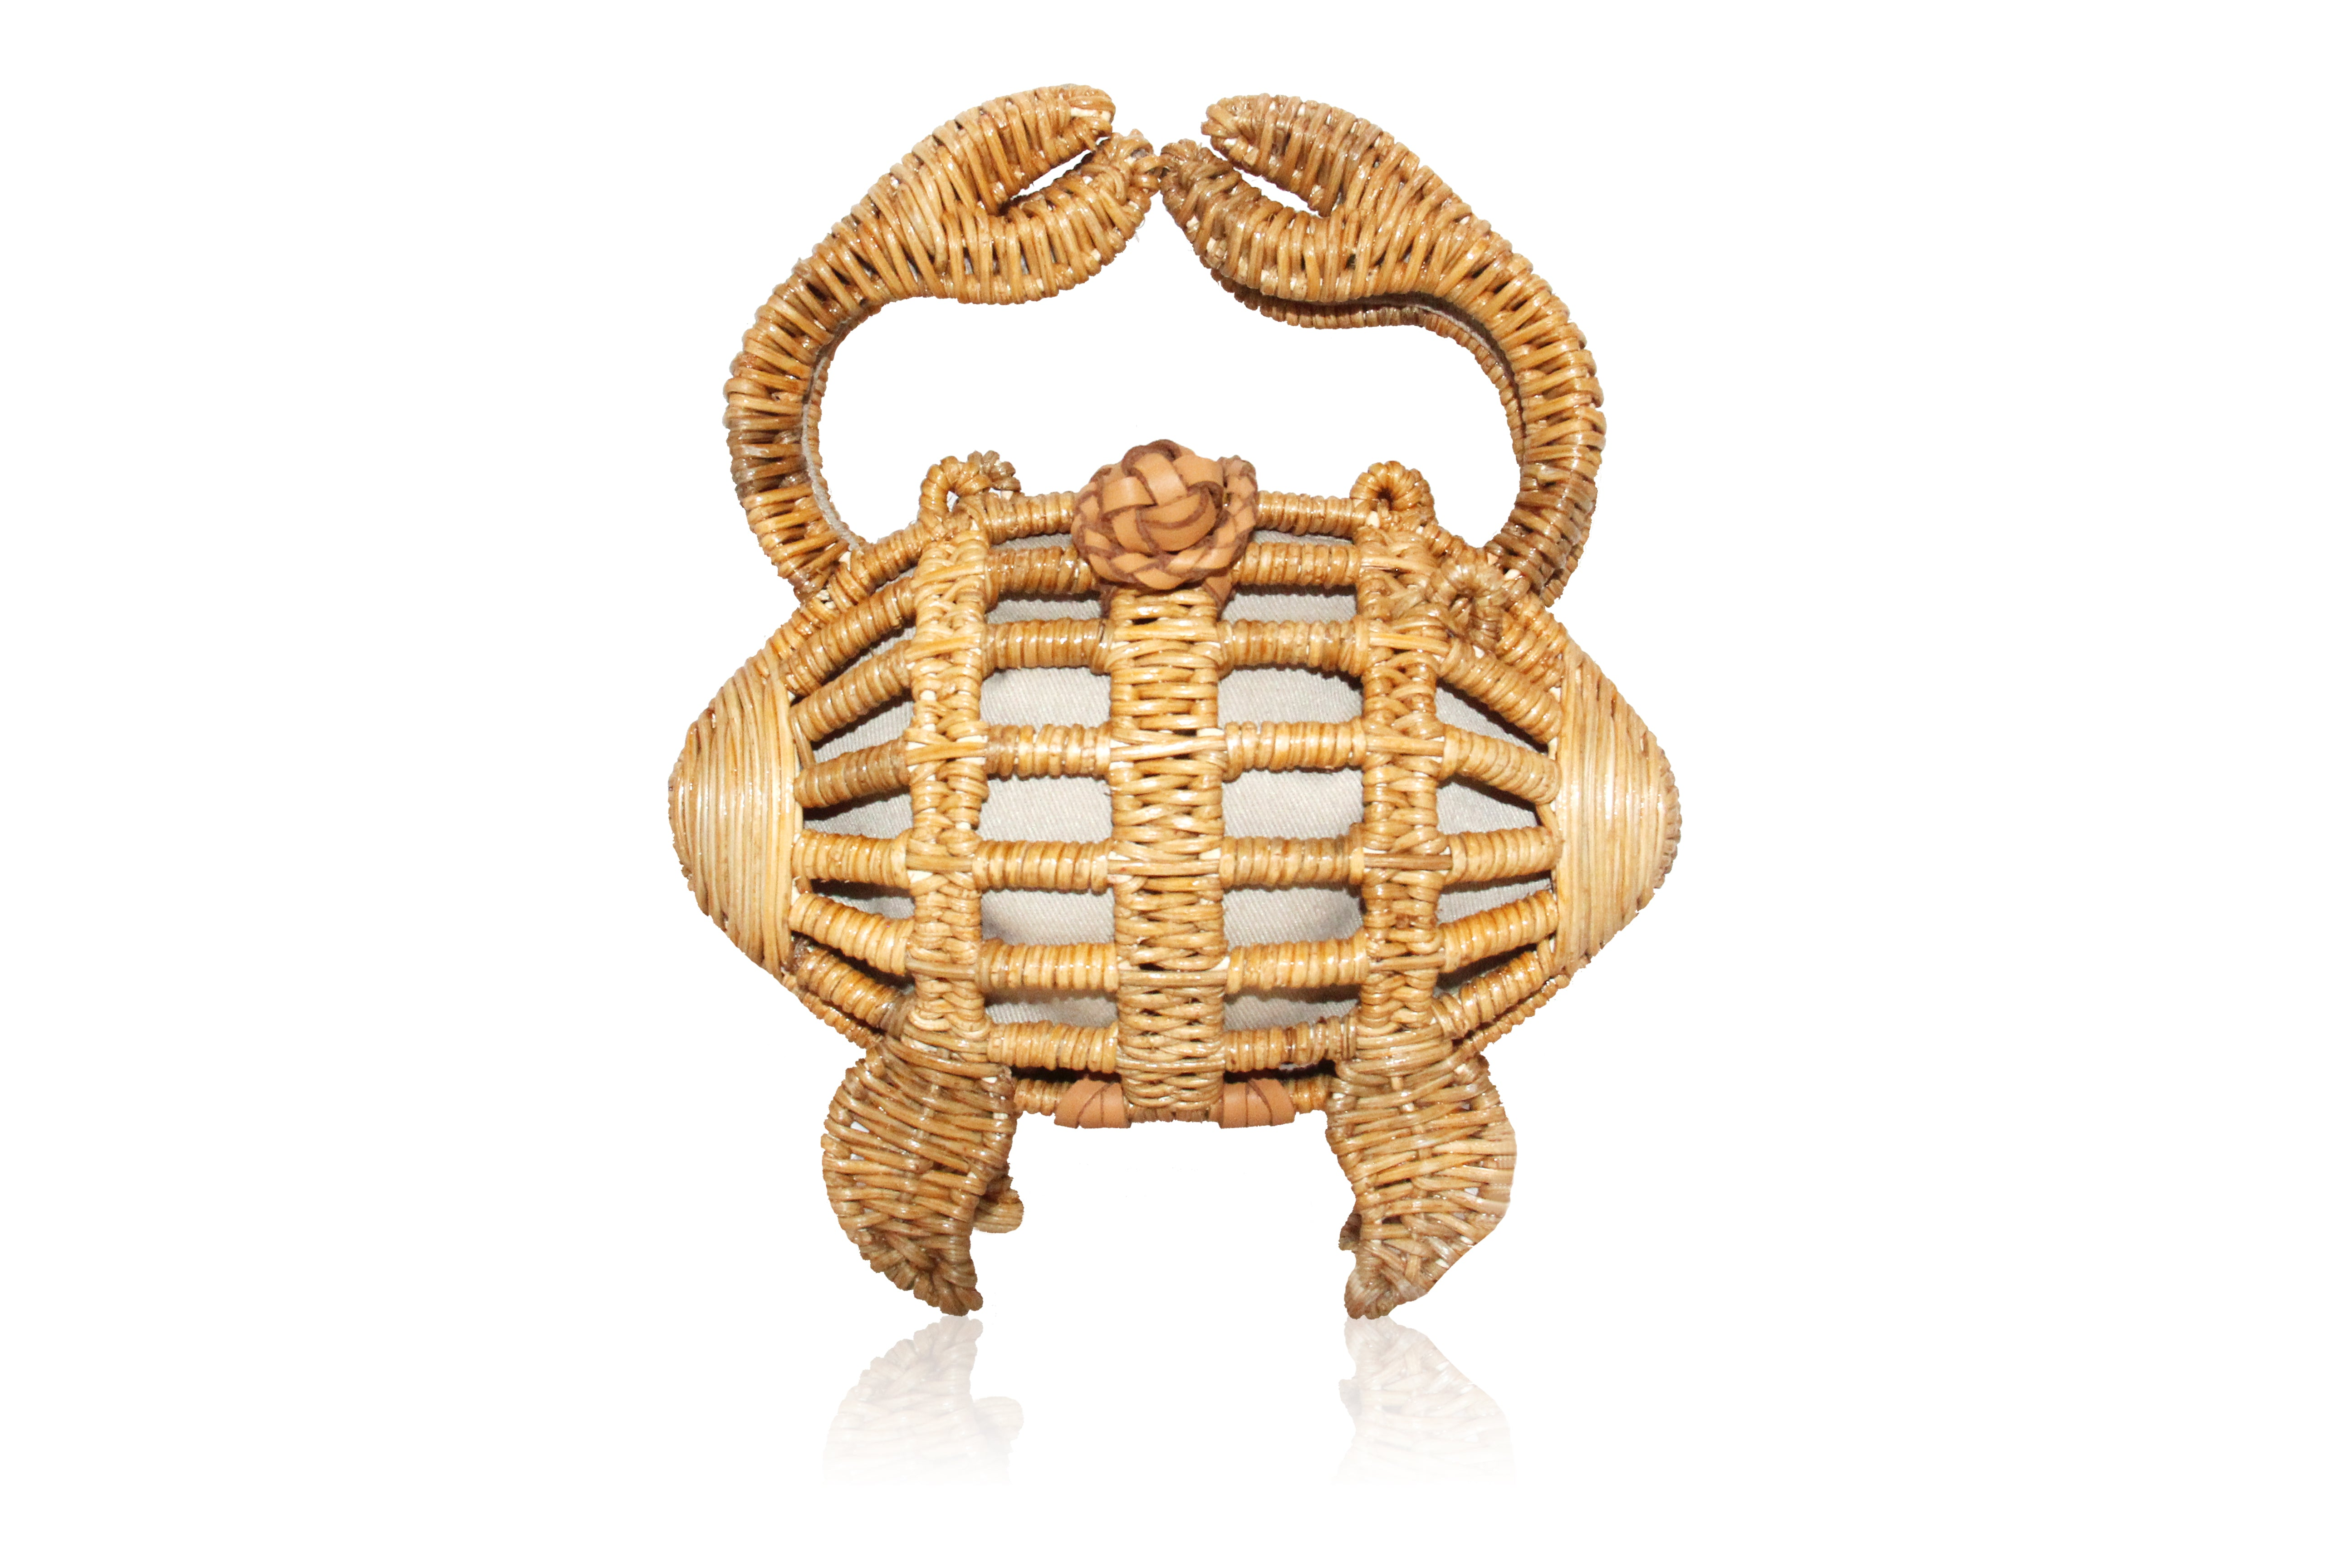 Crab Wicker Clutch